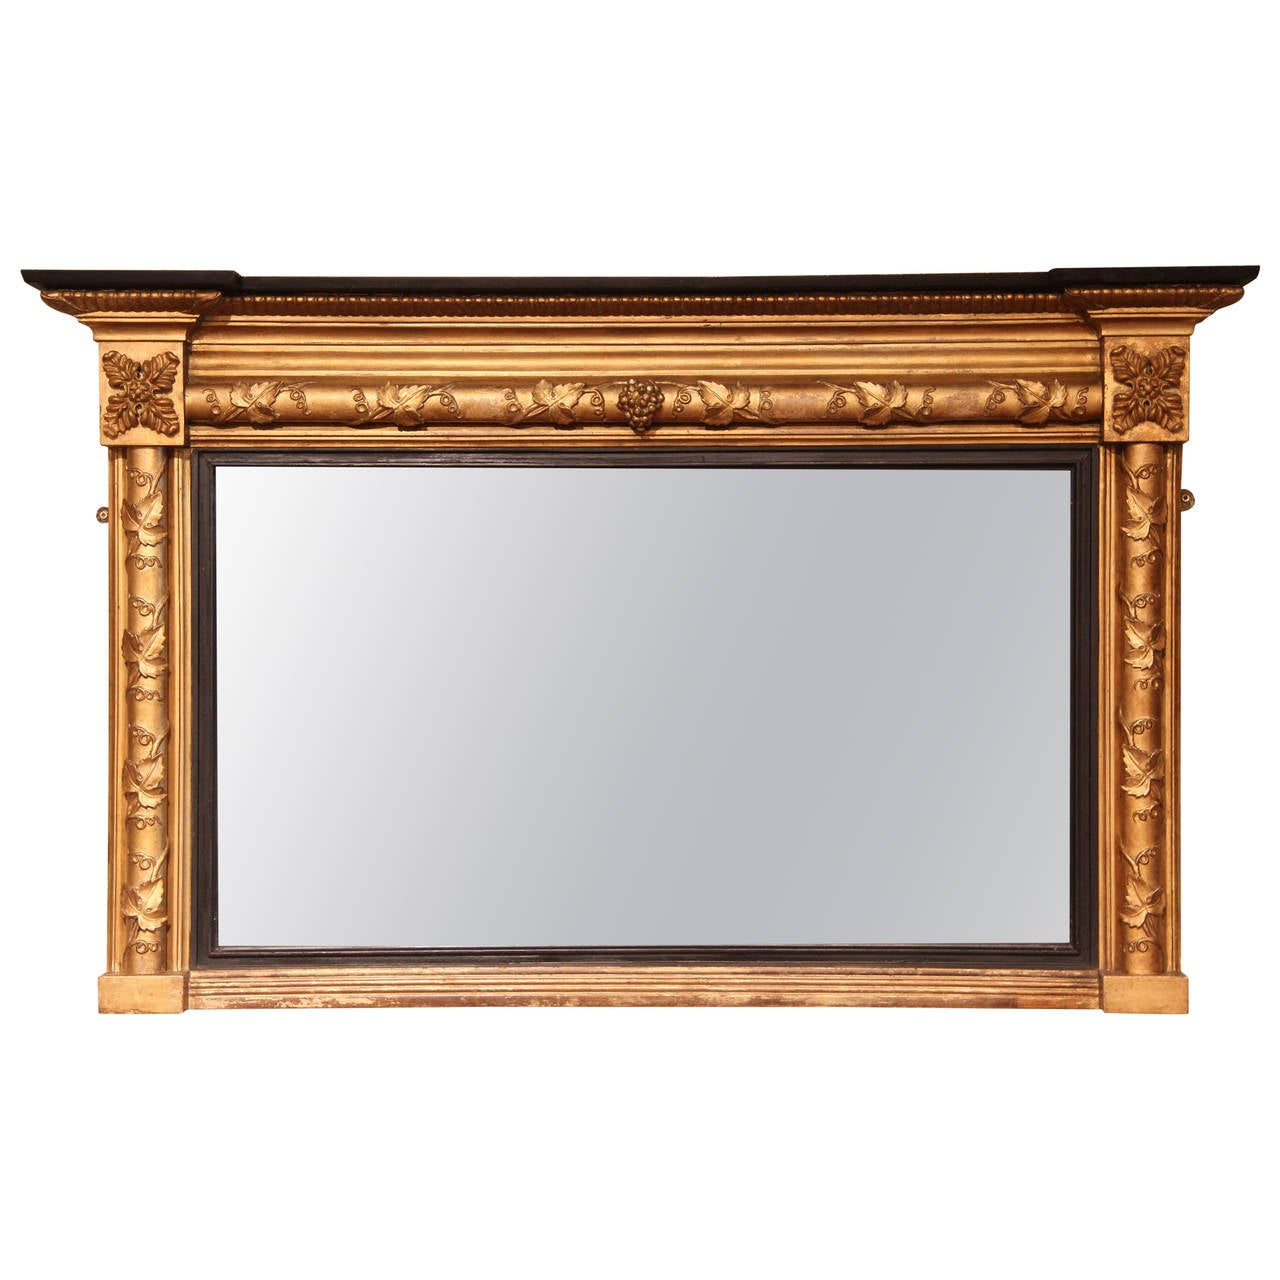 Early 19th century regency period overmantle mirror circa for Overmantle mirror